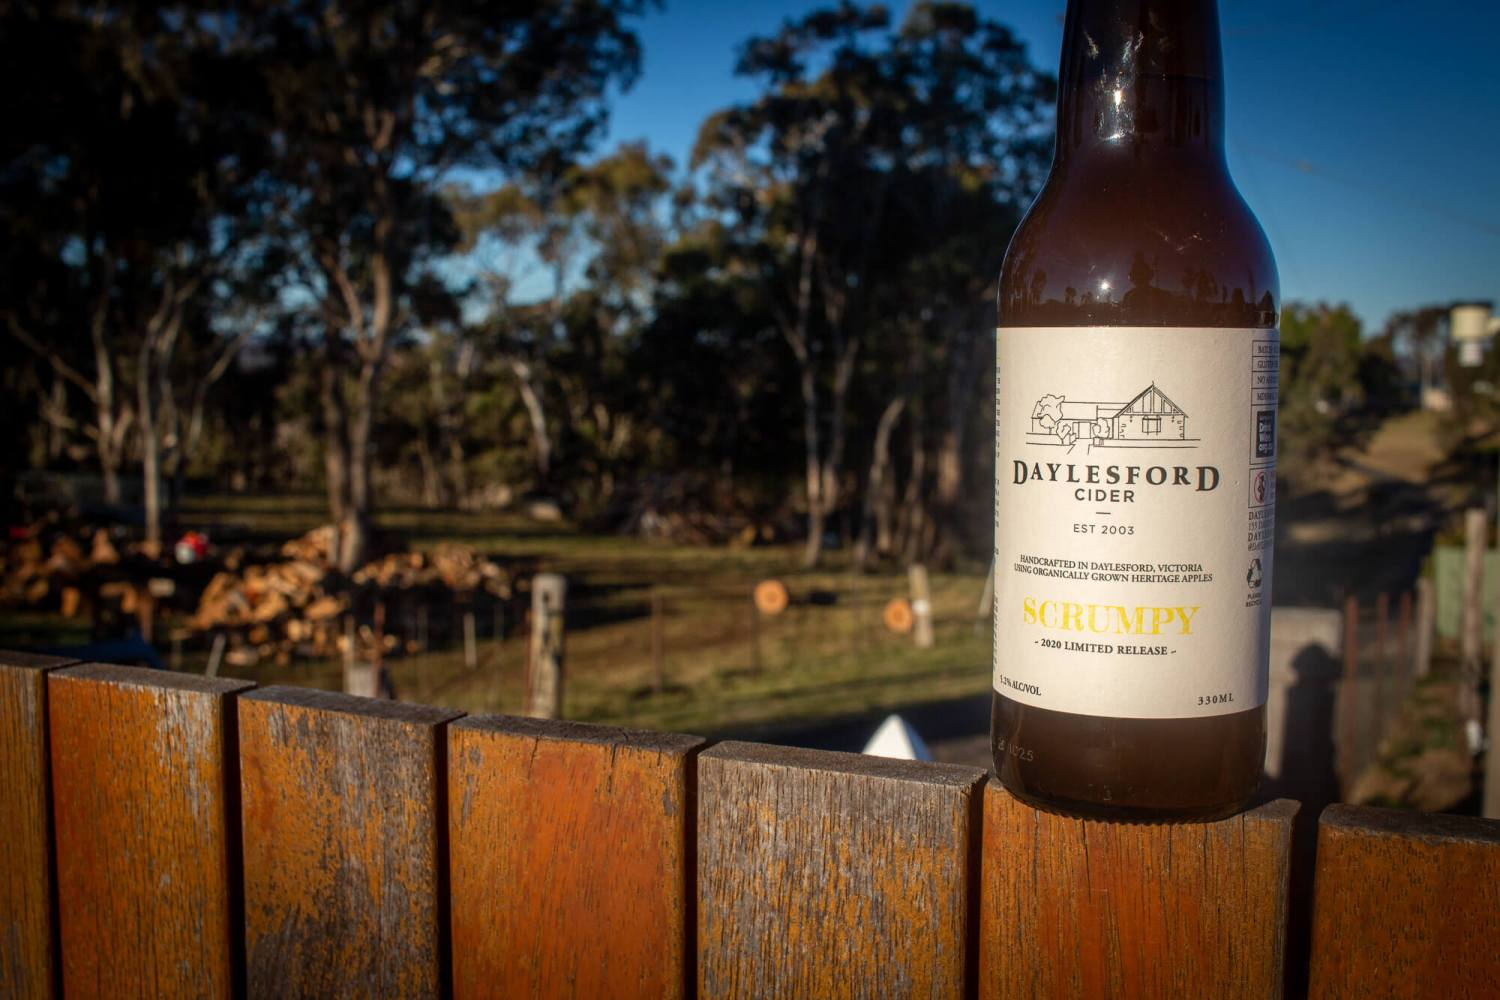 bottle of Daylesford Scumpy Cider 2020 sitting on a fence